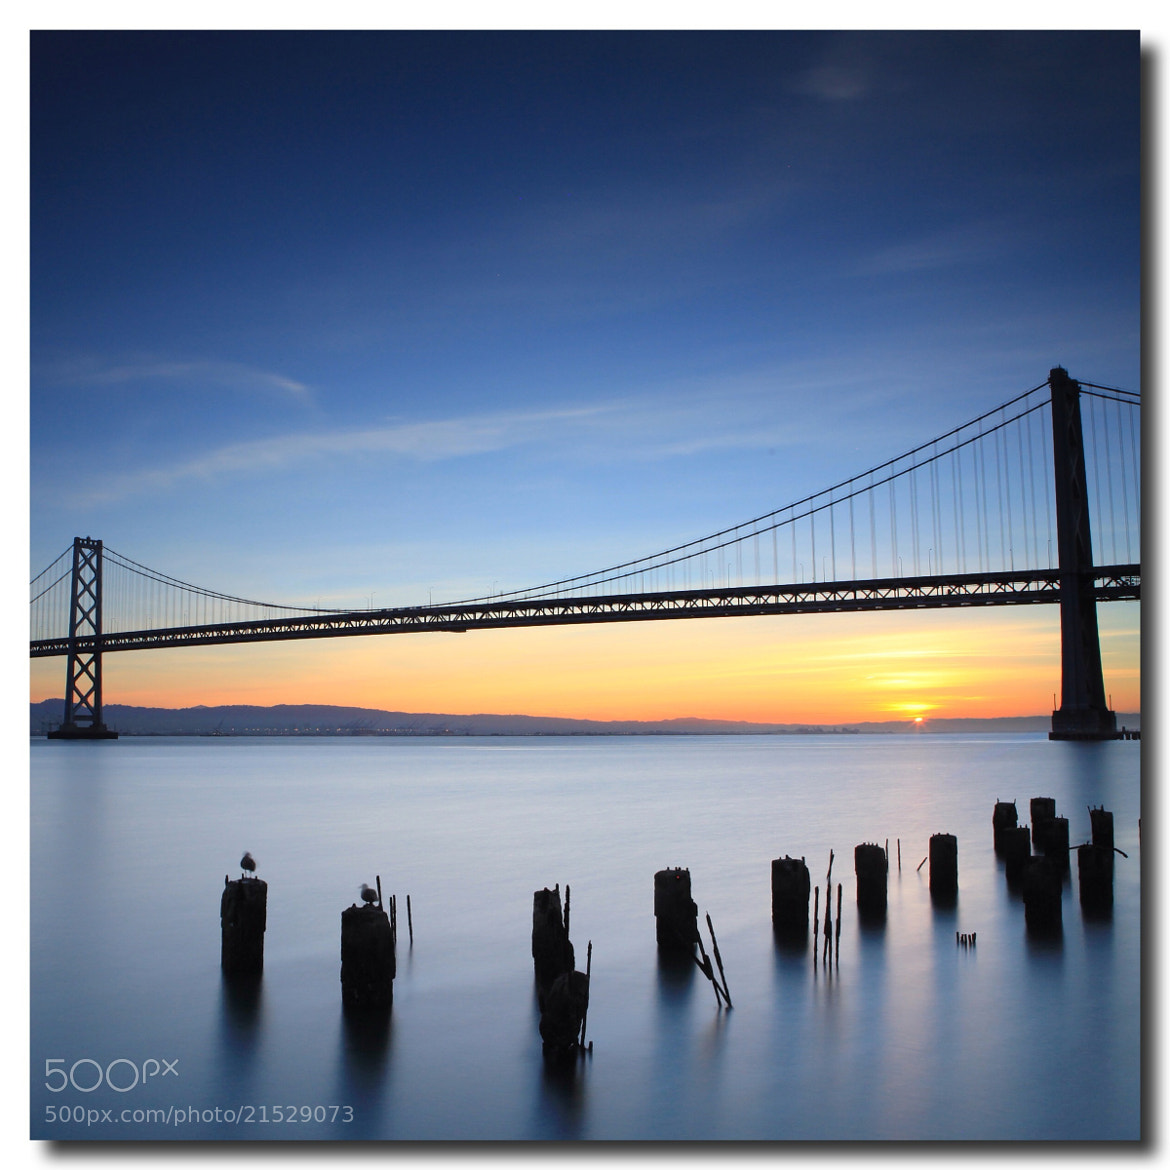 Photograph Bay Bridge by Photography Hobbyist on 500px